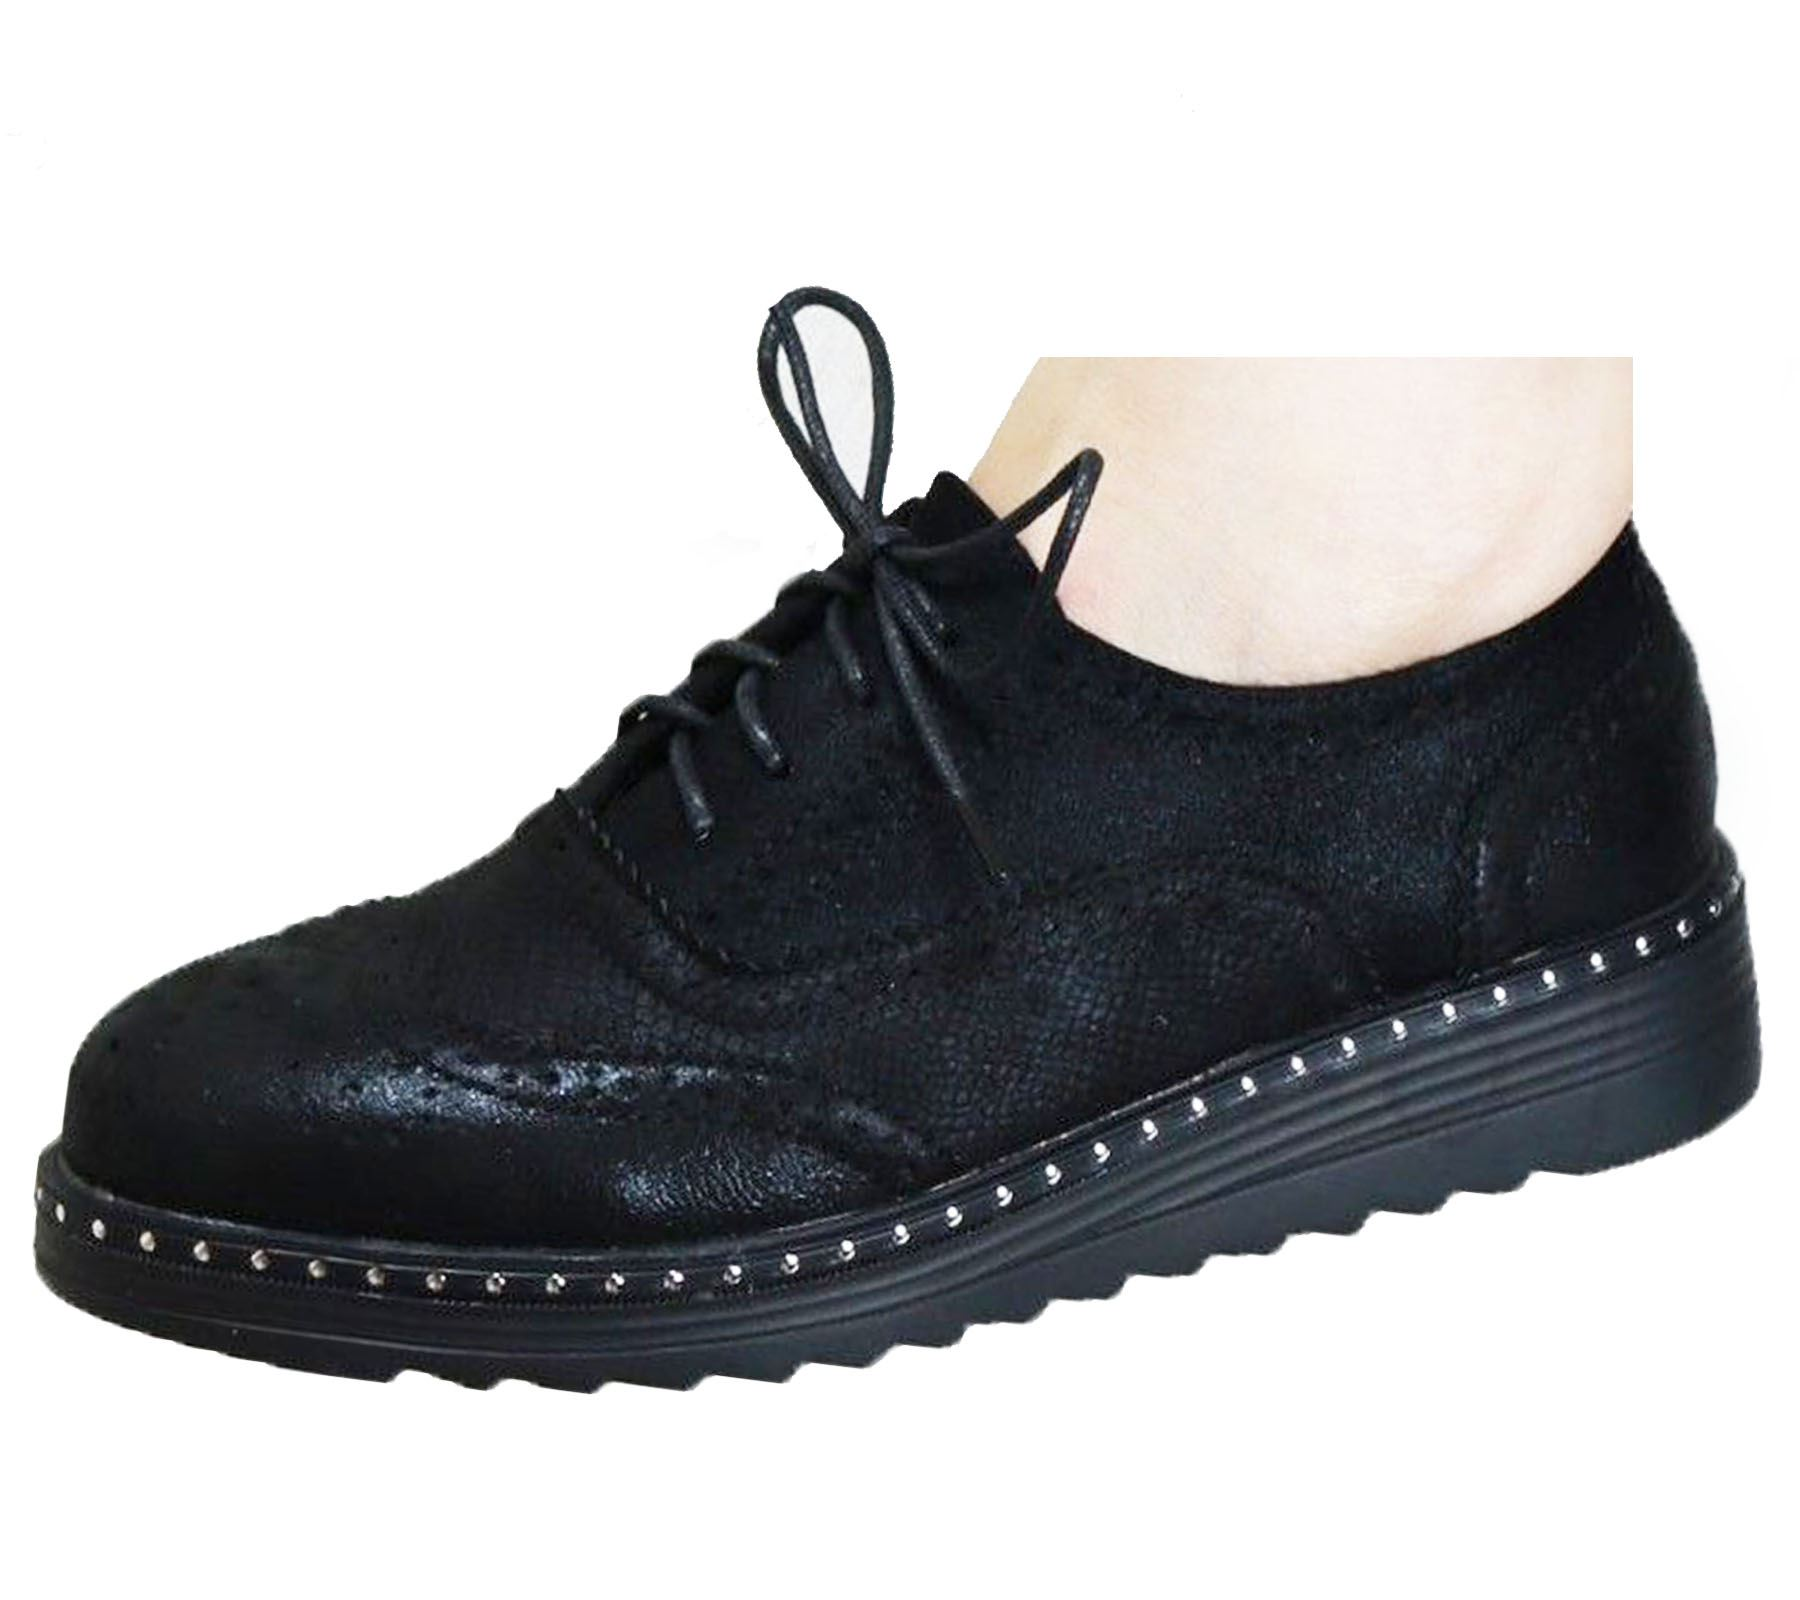 Ladies-Brogue-Lace-Up-Shoes-Womens-Oxford-Smart-Office-Loafers-Shoes miniatura 4